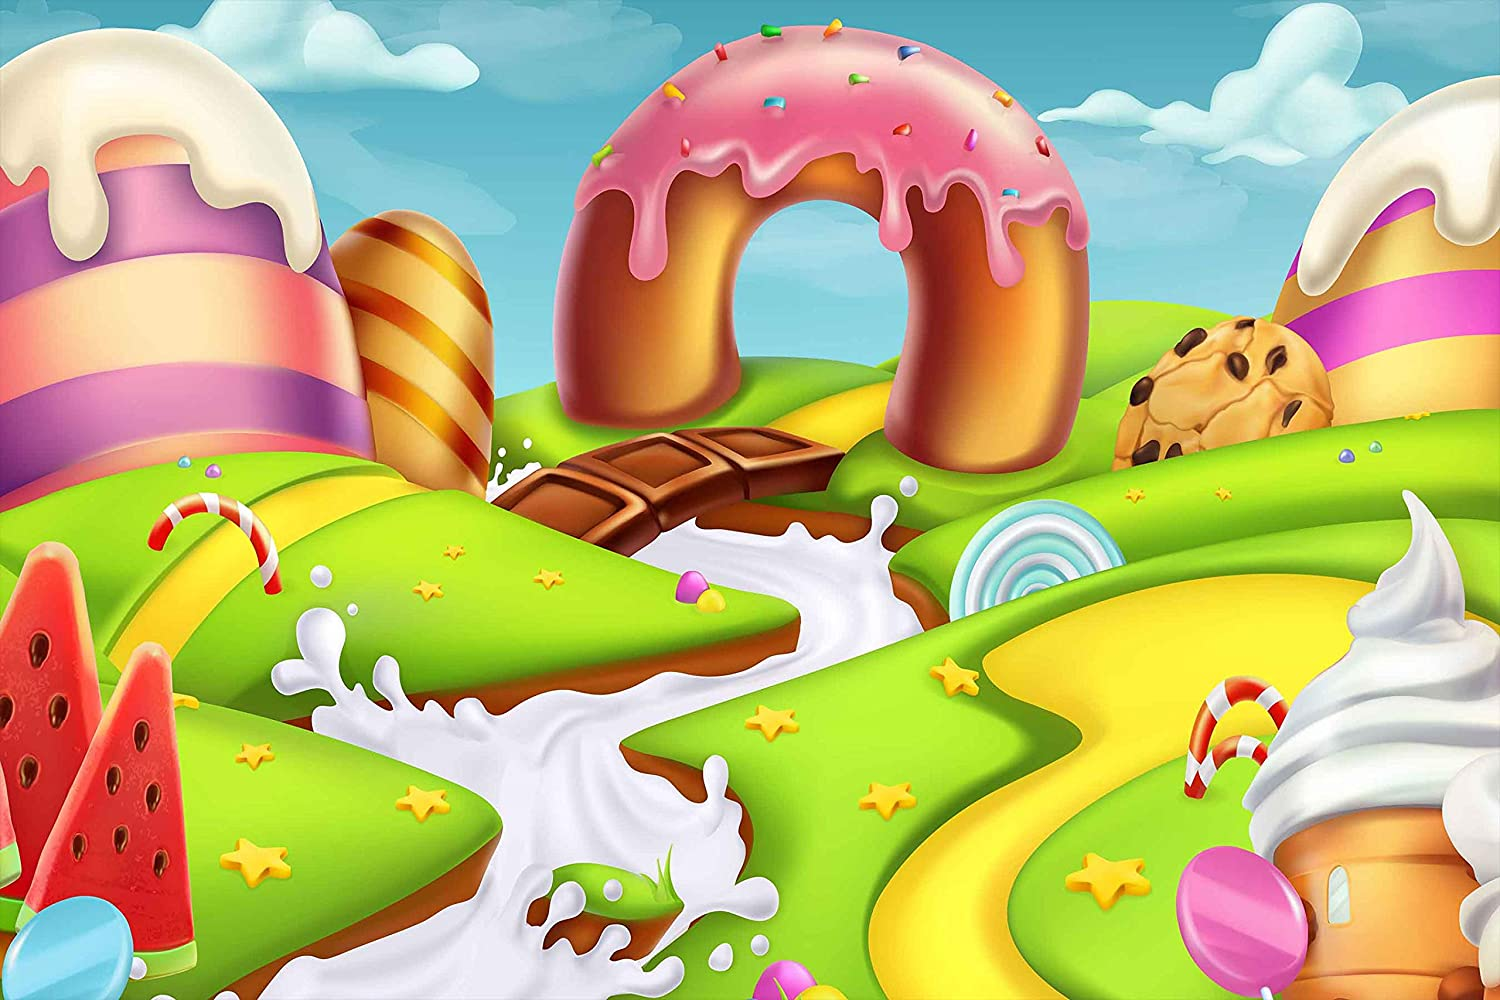 Cartoon Candyland Backdrops for Photography 9x6FT Fairy Tale Ice-Cream Chocolate Backgrounds Birthday Party Decoration Banner Photo Studio Props Kid Baby Girl LUCKSTY LUP351